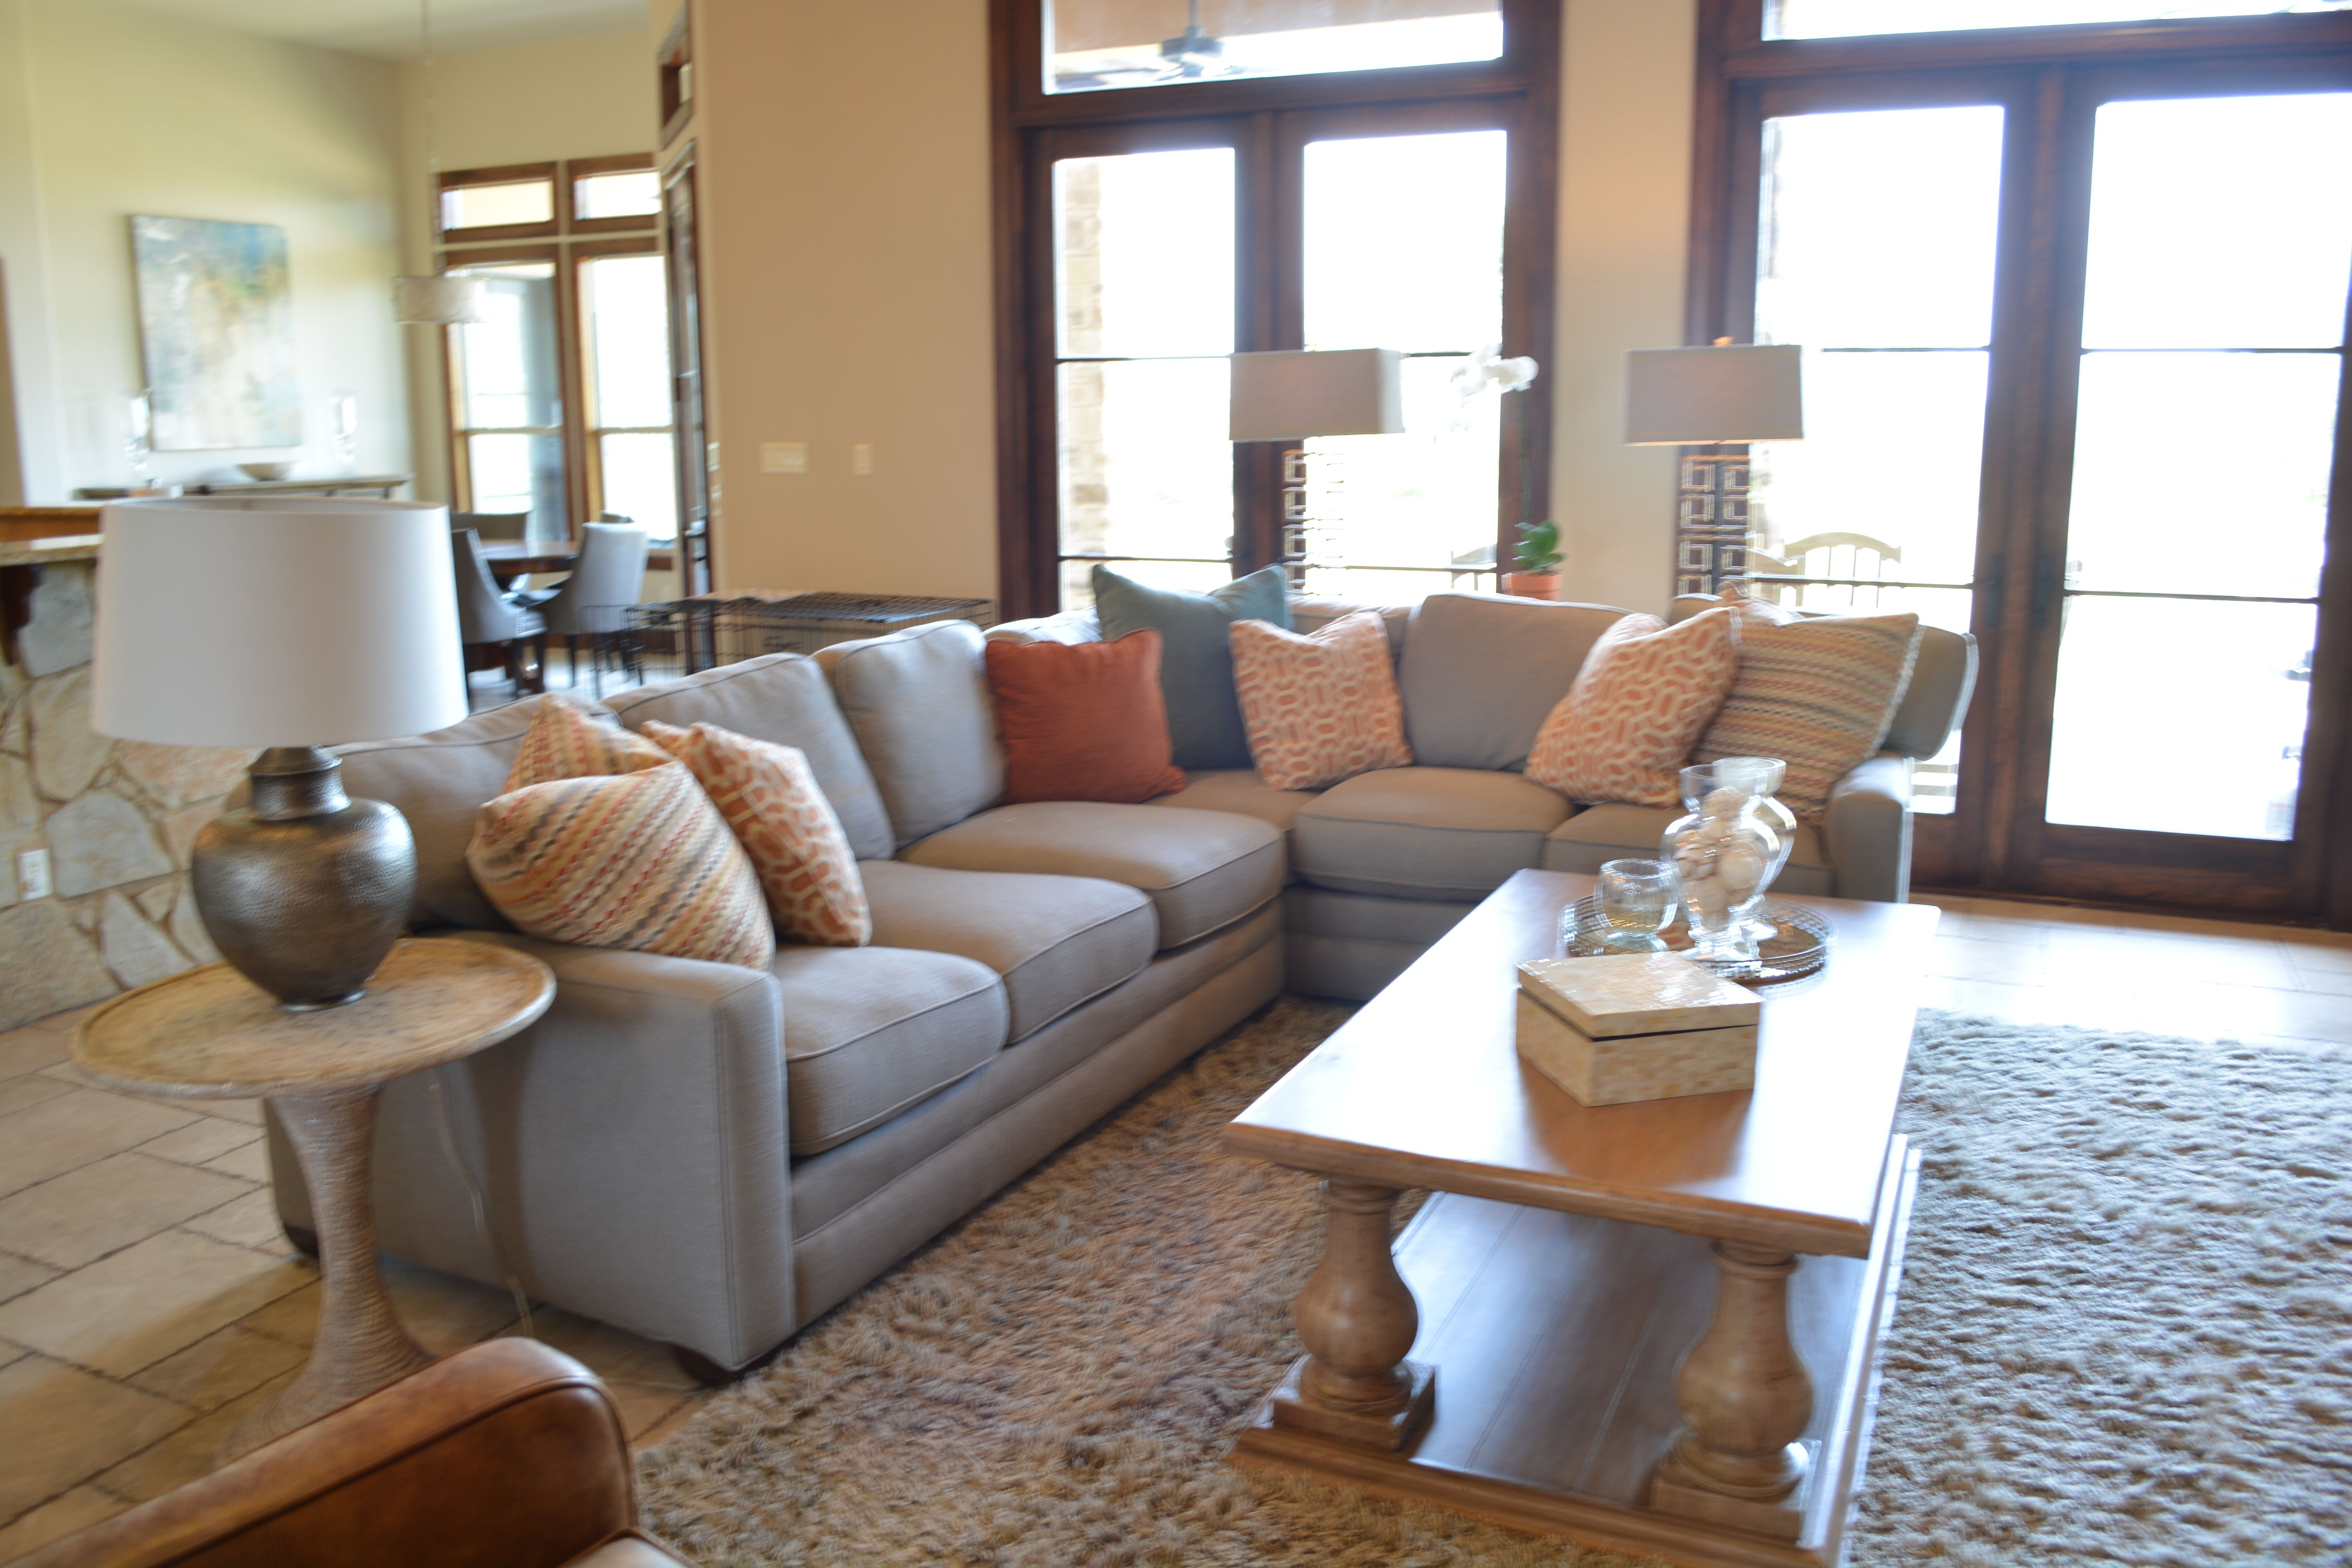 We added colorful throw pillows to this gray Taylor King Sectional